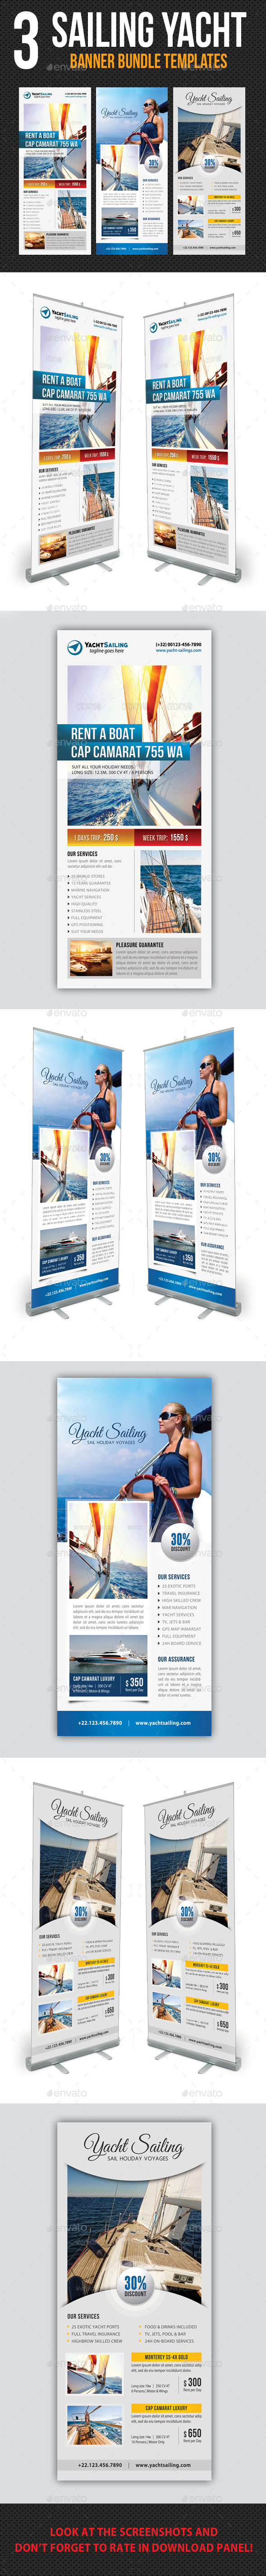 GraphicRiver 3 in 1 Sailing Yacht Banner Bundle 03 11857392